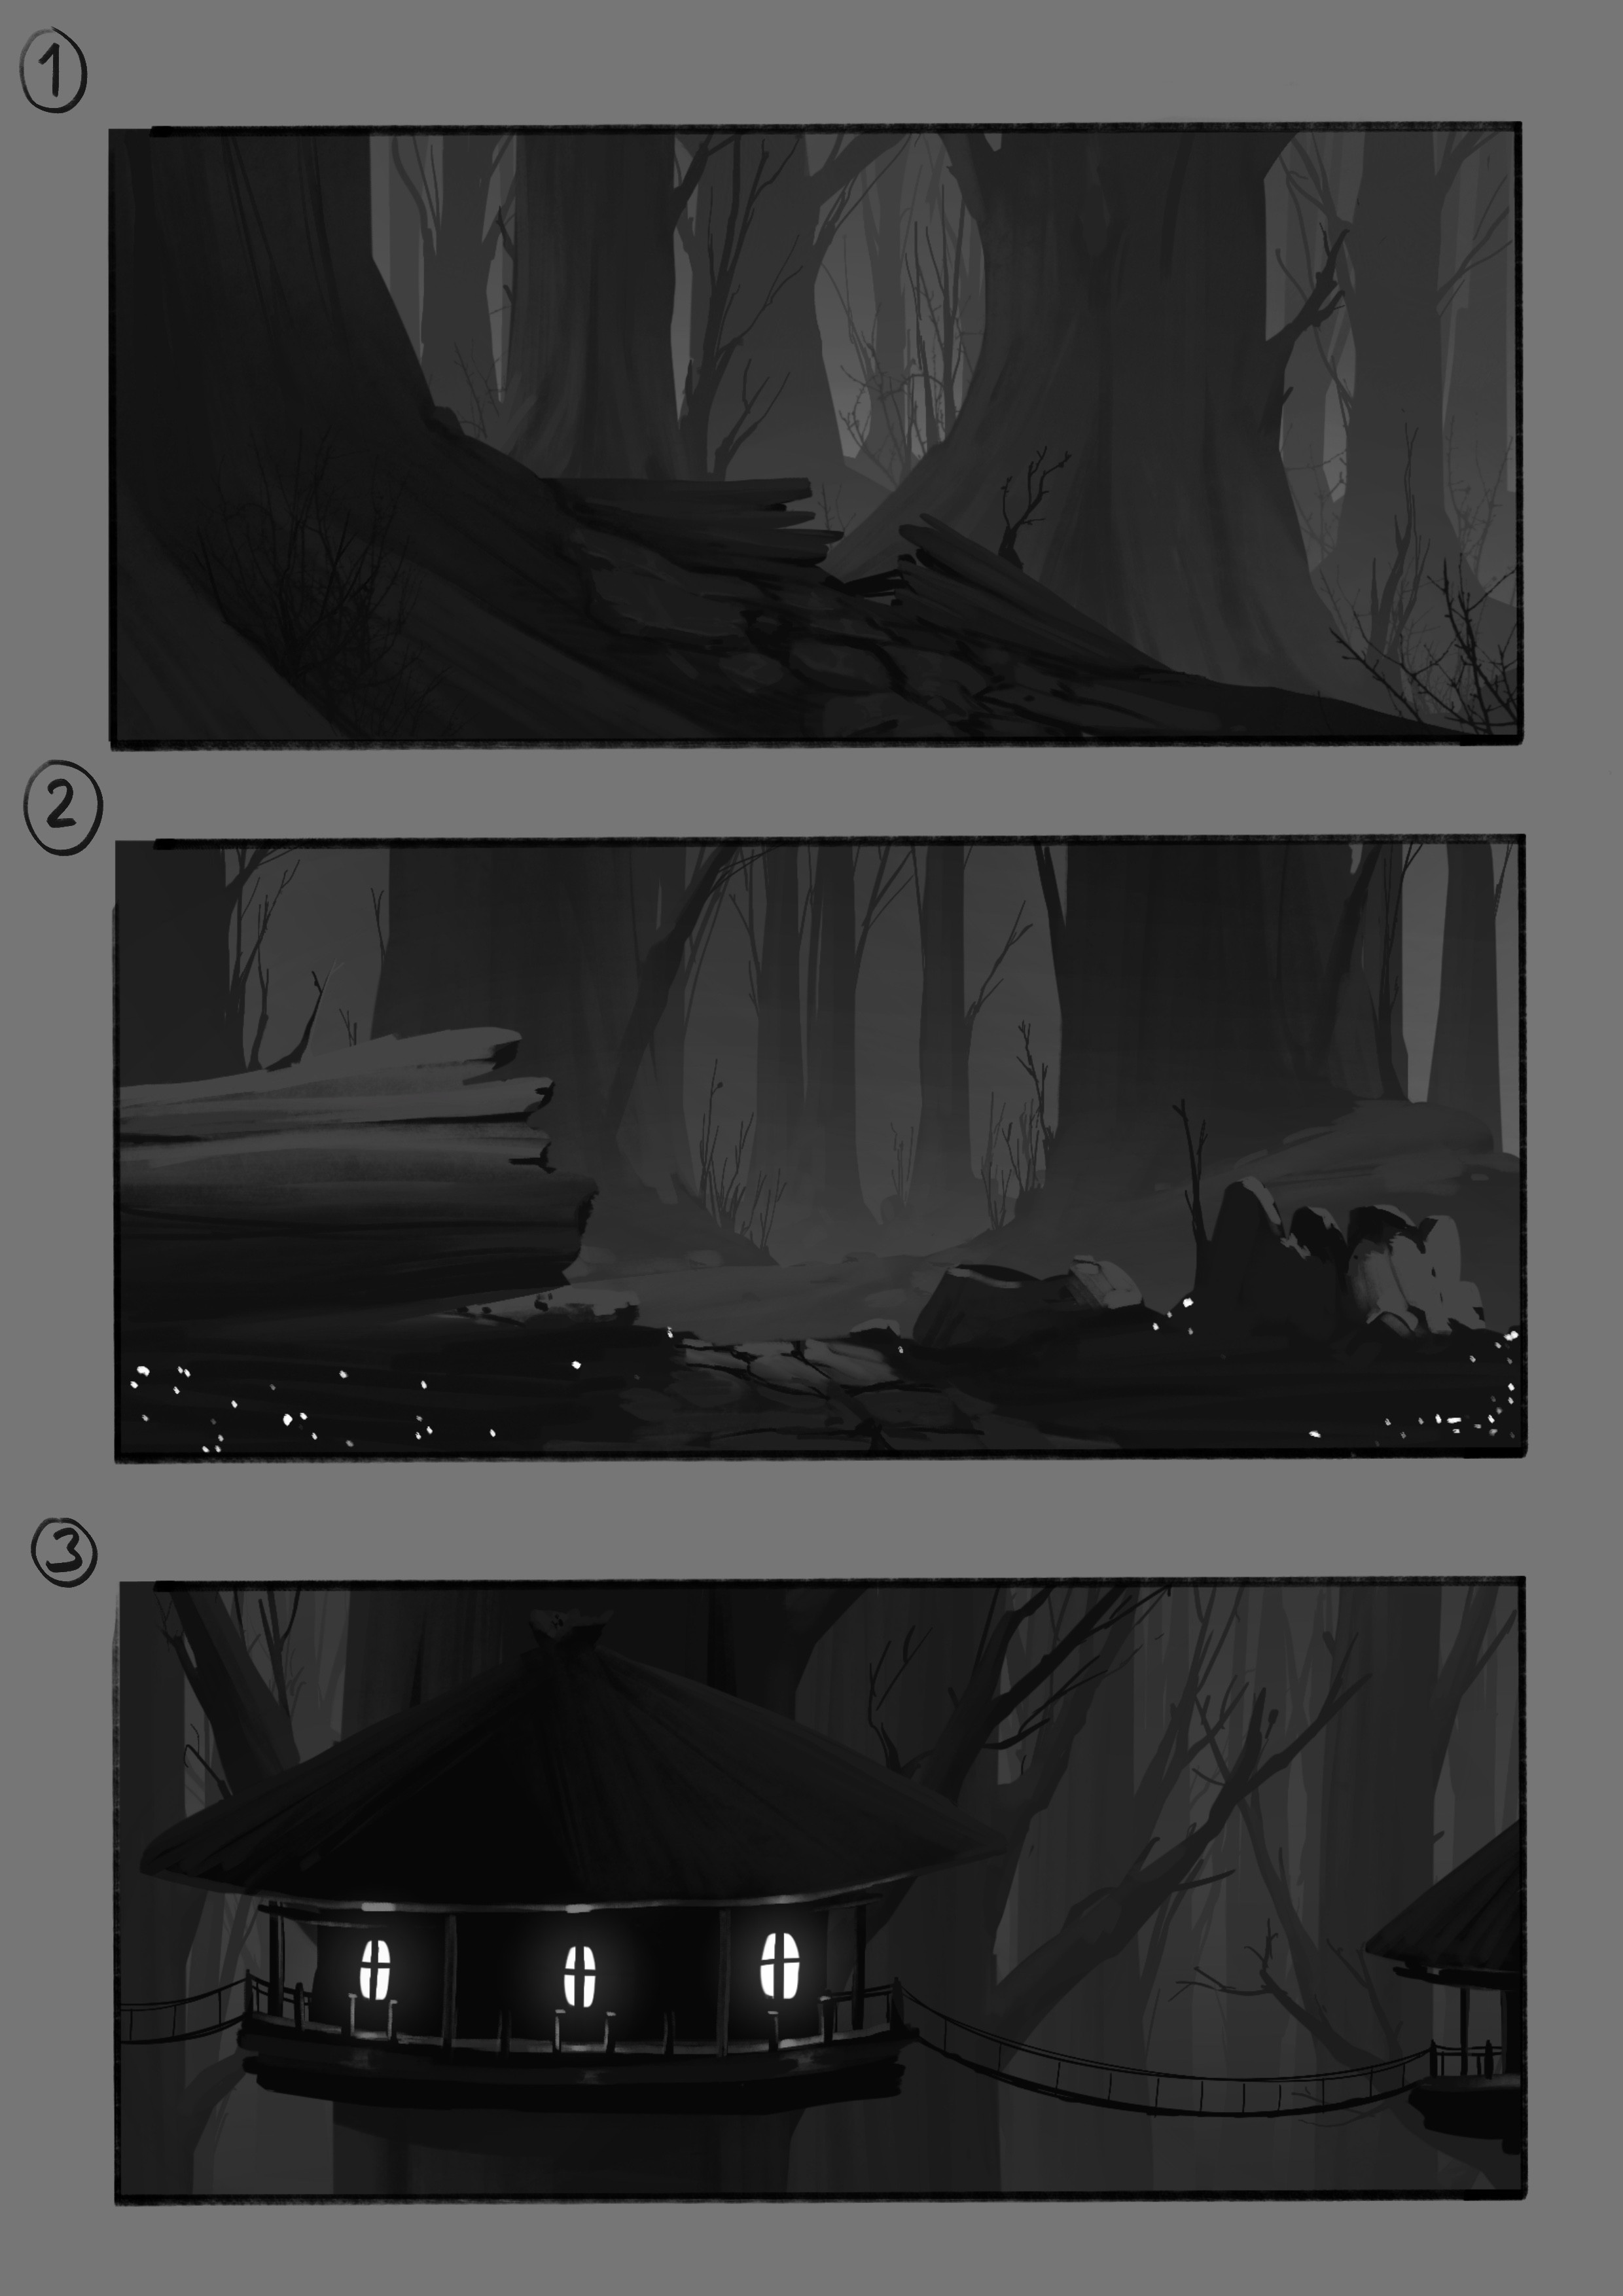 location concepts for the forest level